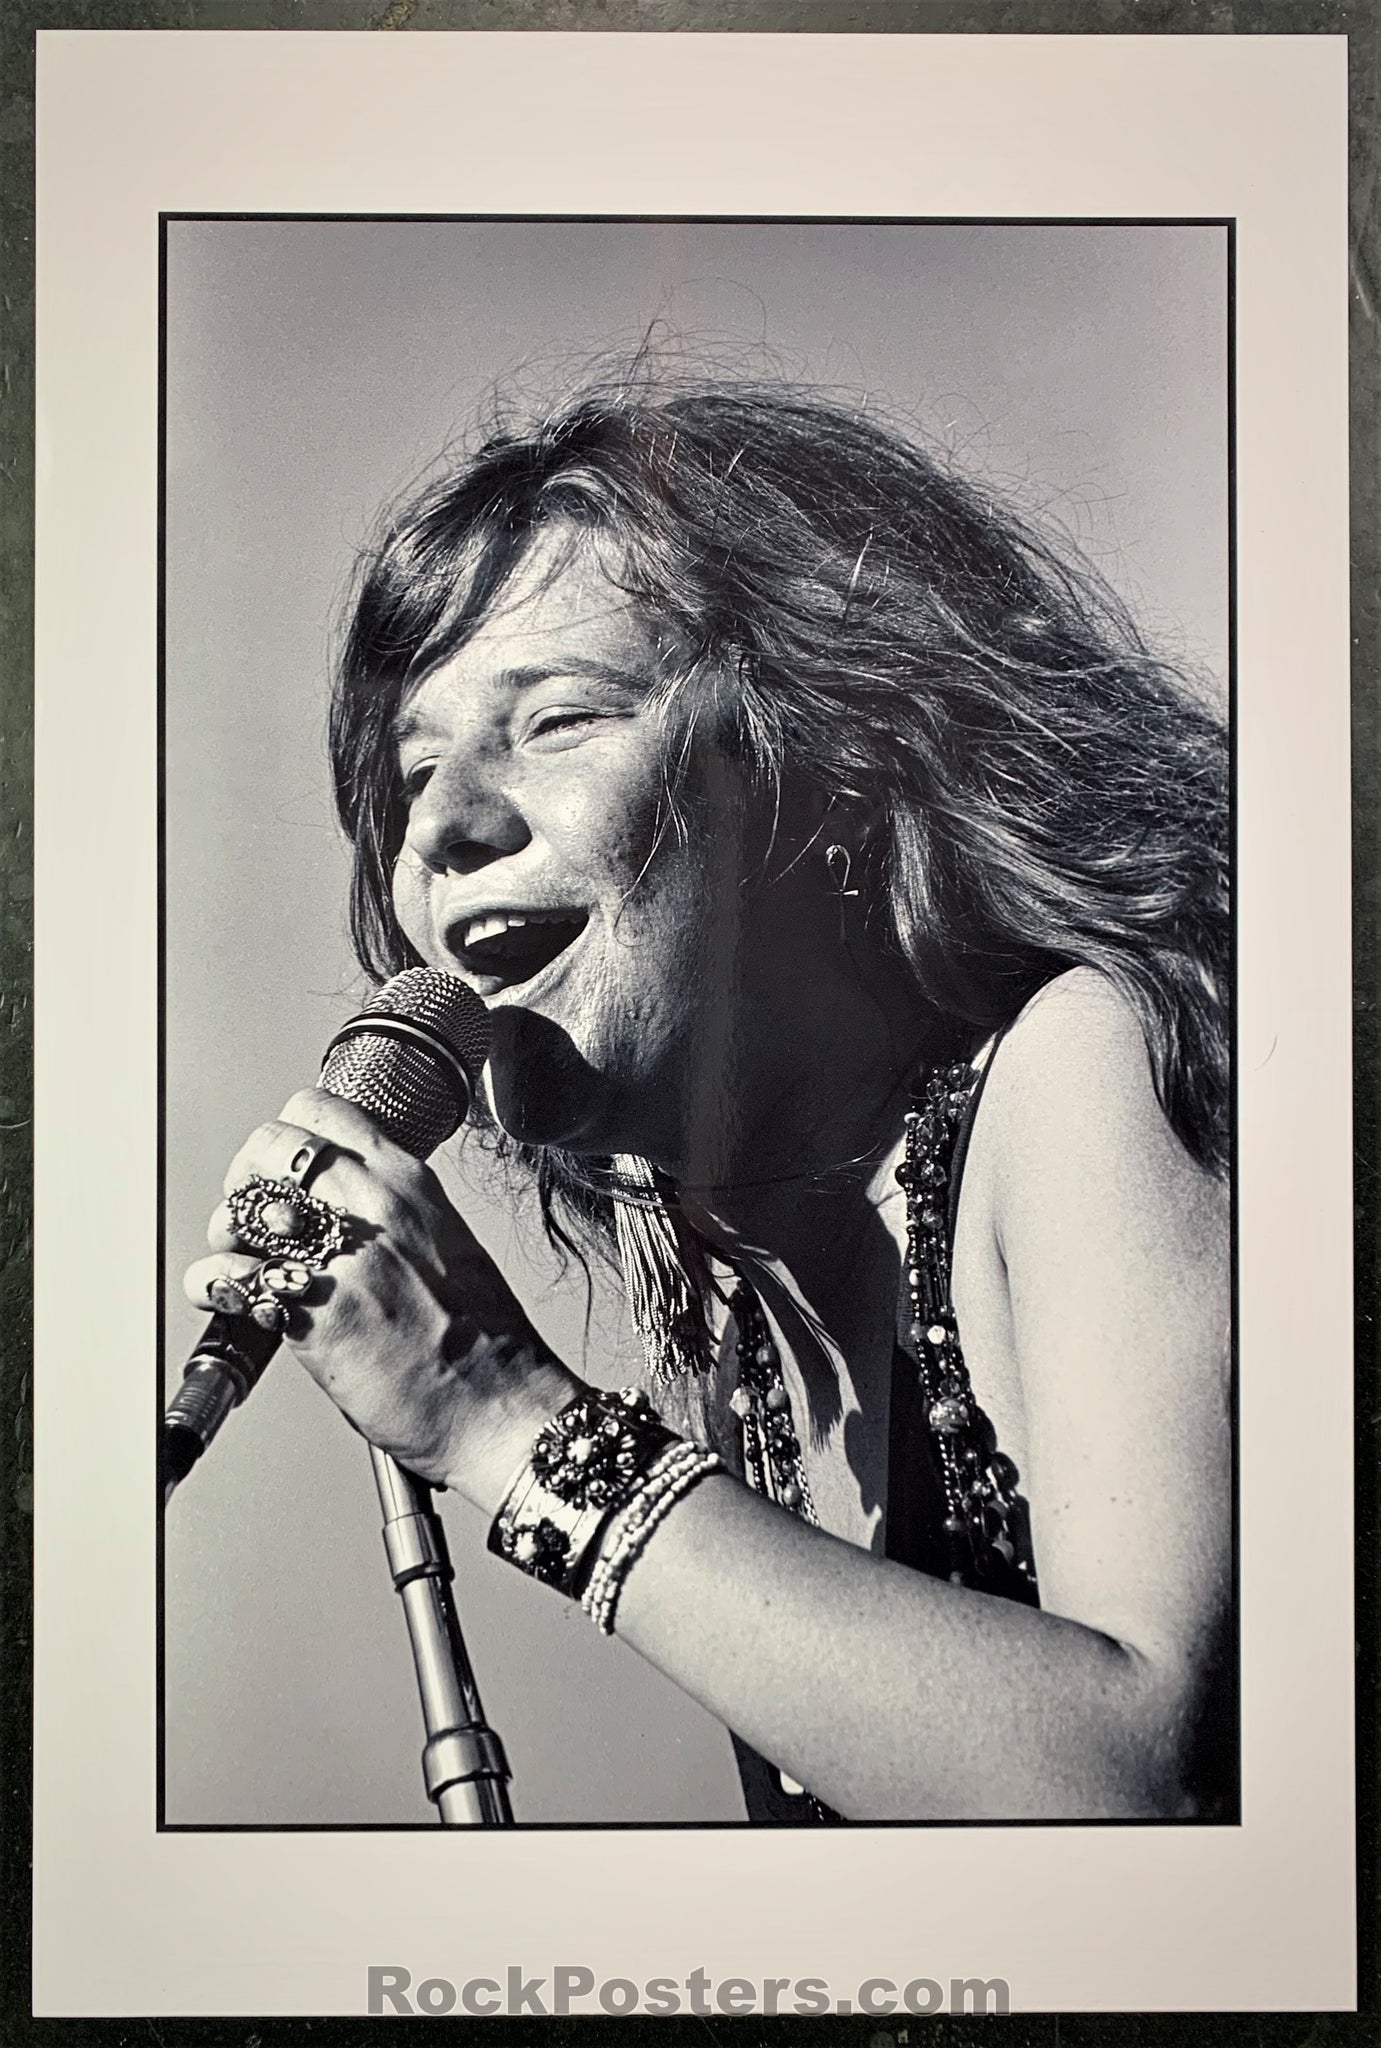 AOR-2.341 - Janis Joplin Live 1968 Concert Photo - Nor Cal Folk-Rock Fest - Near Mint